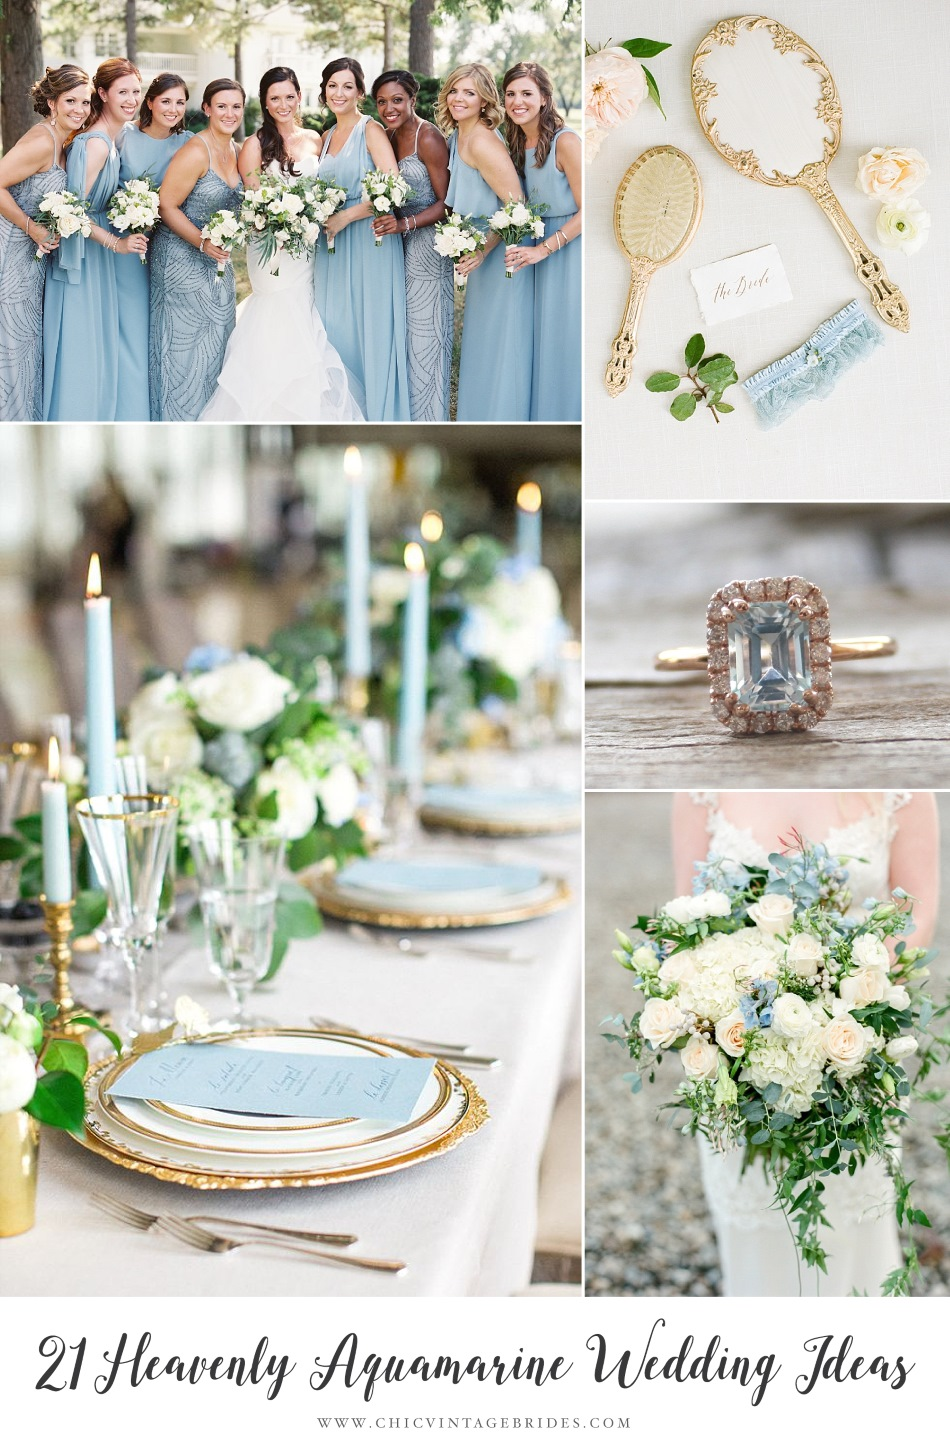 21 Ideas for a Beautiful Aquamarine Wedding - Chic Vintage Brides ...